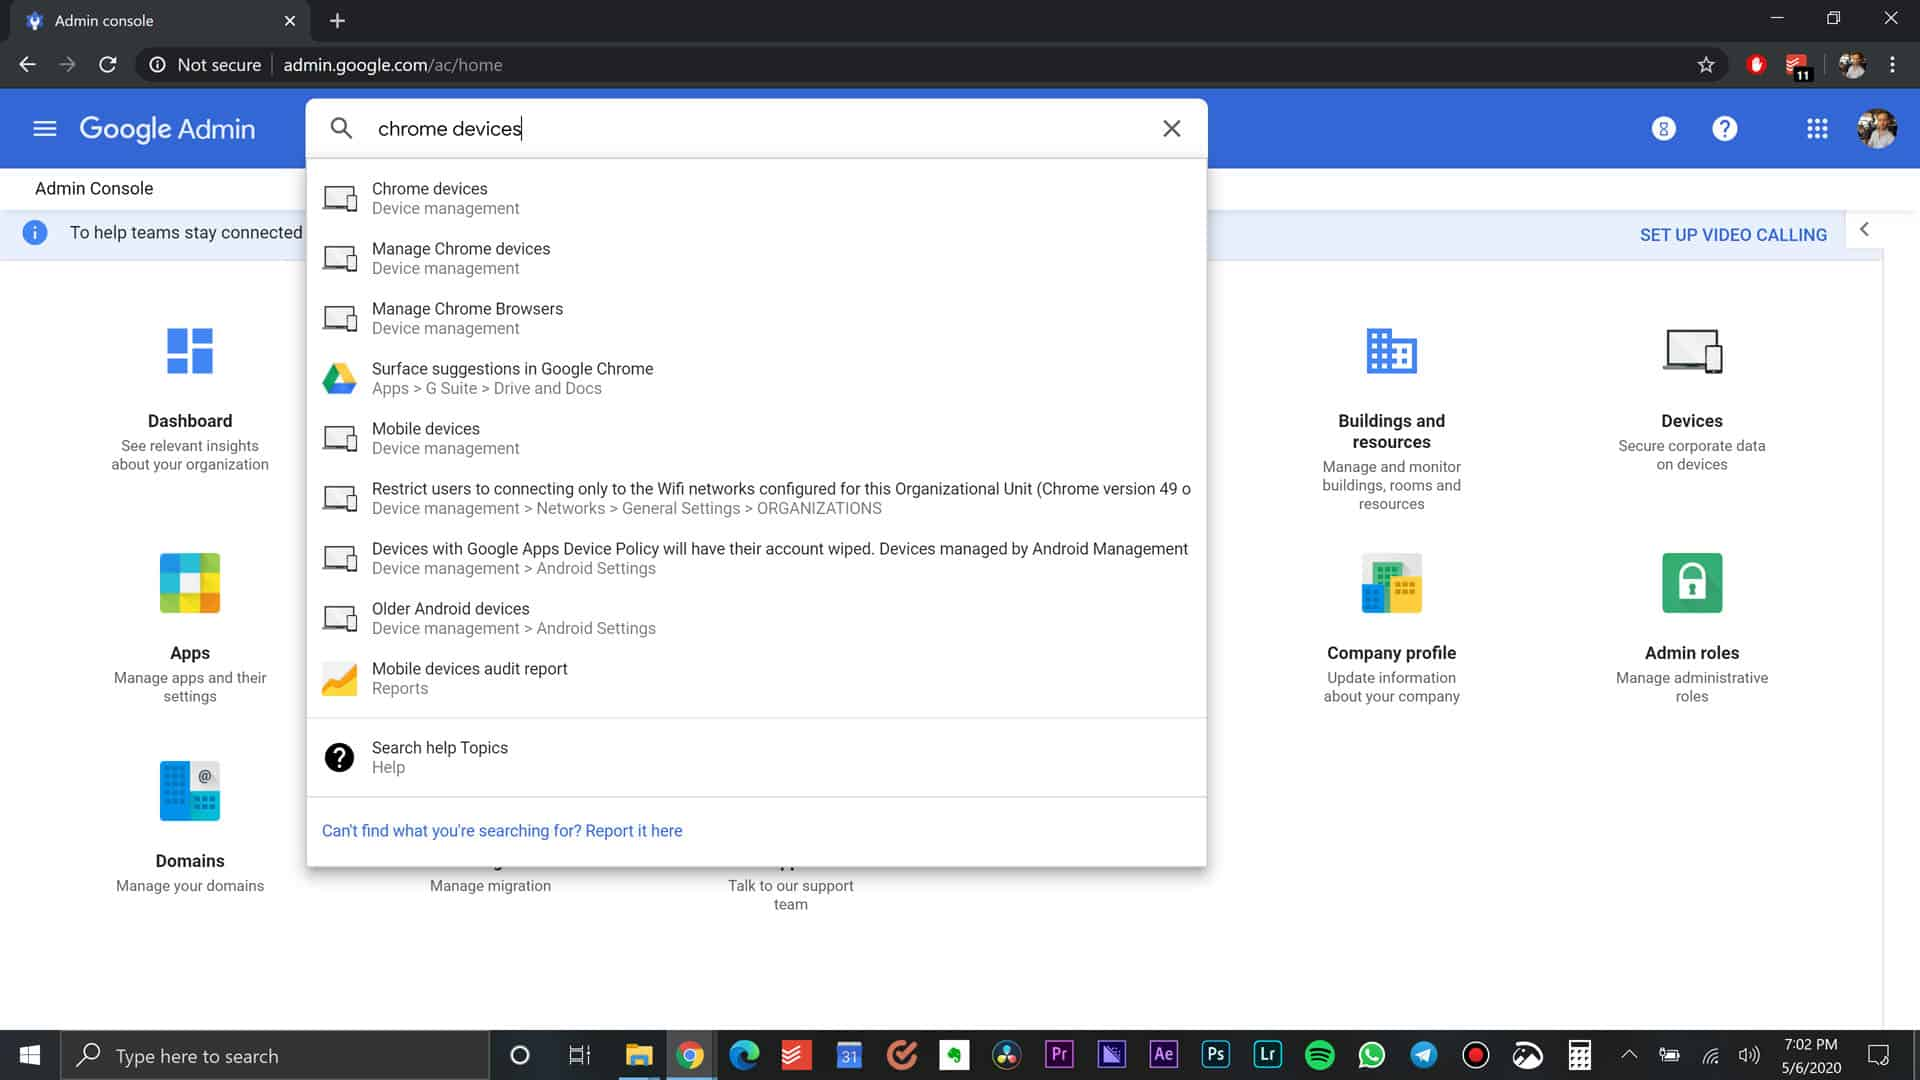 Search for Chrome Devices